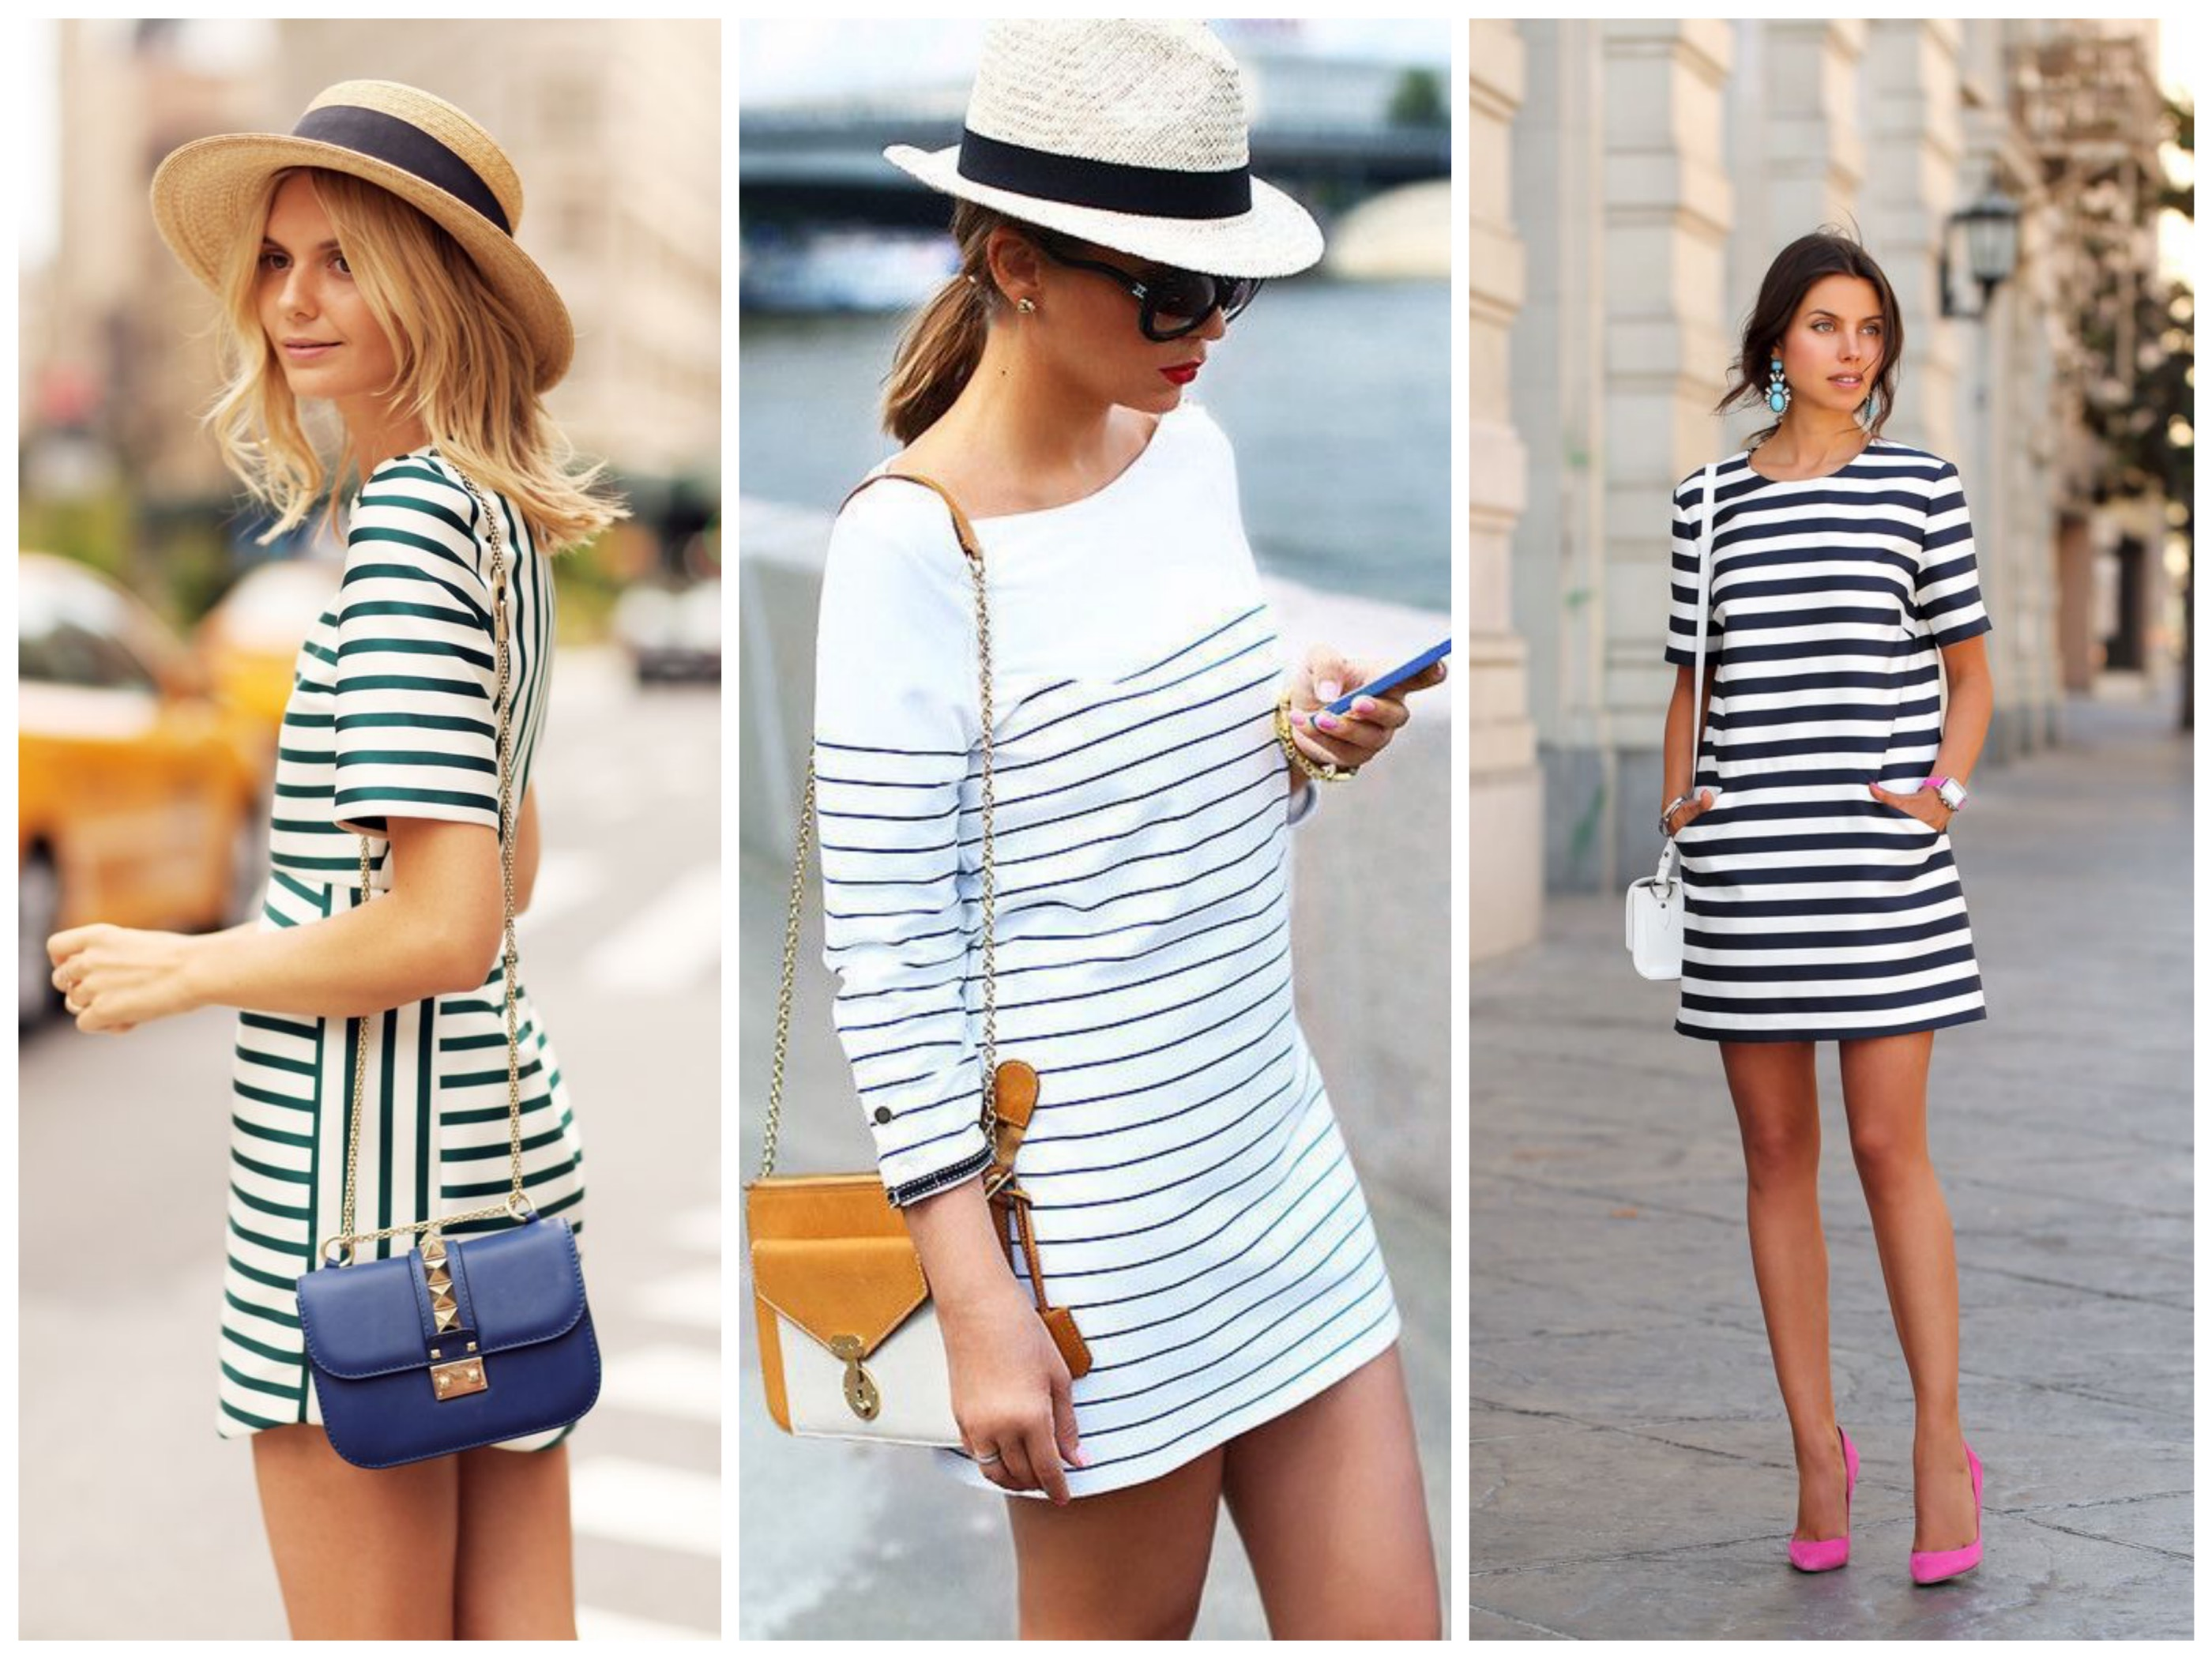 Add some colors to your striped dress